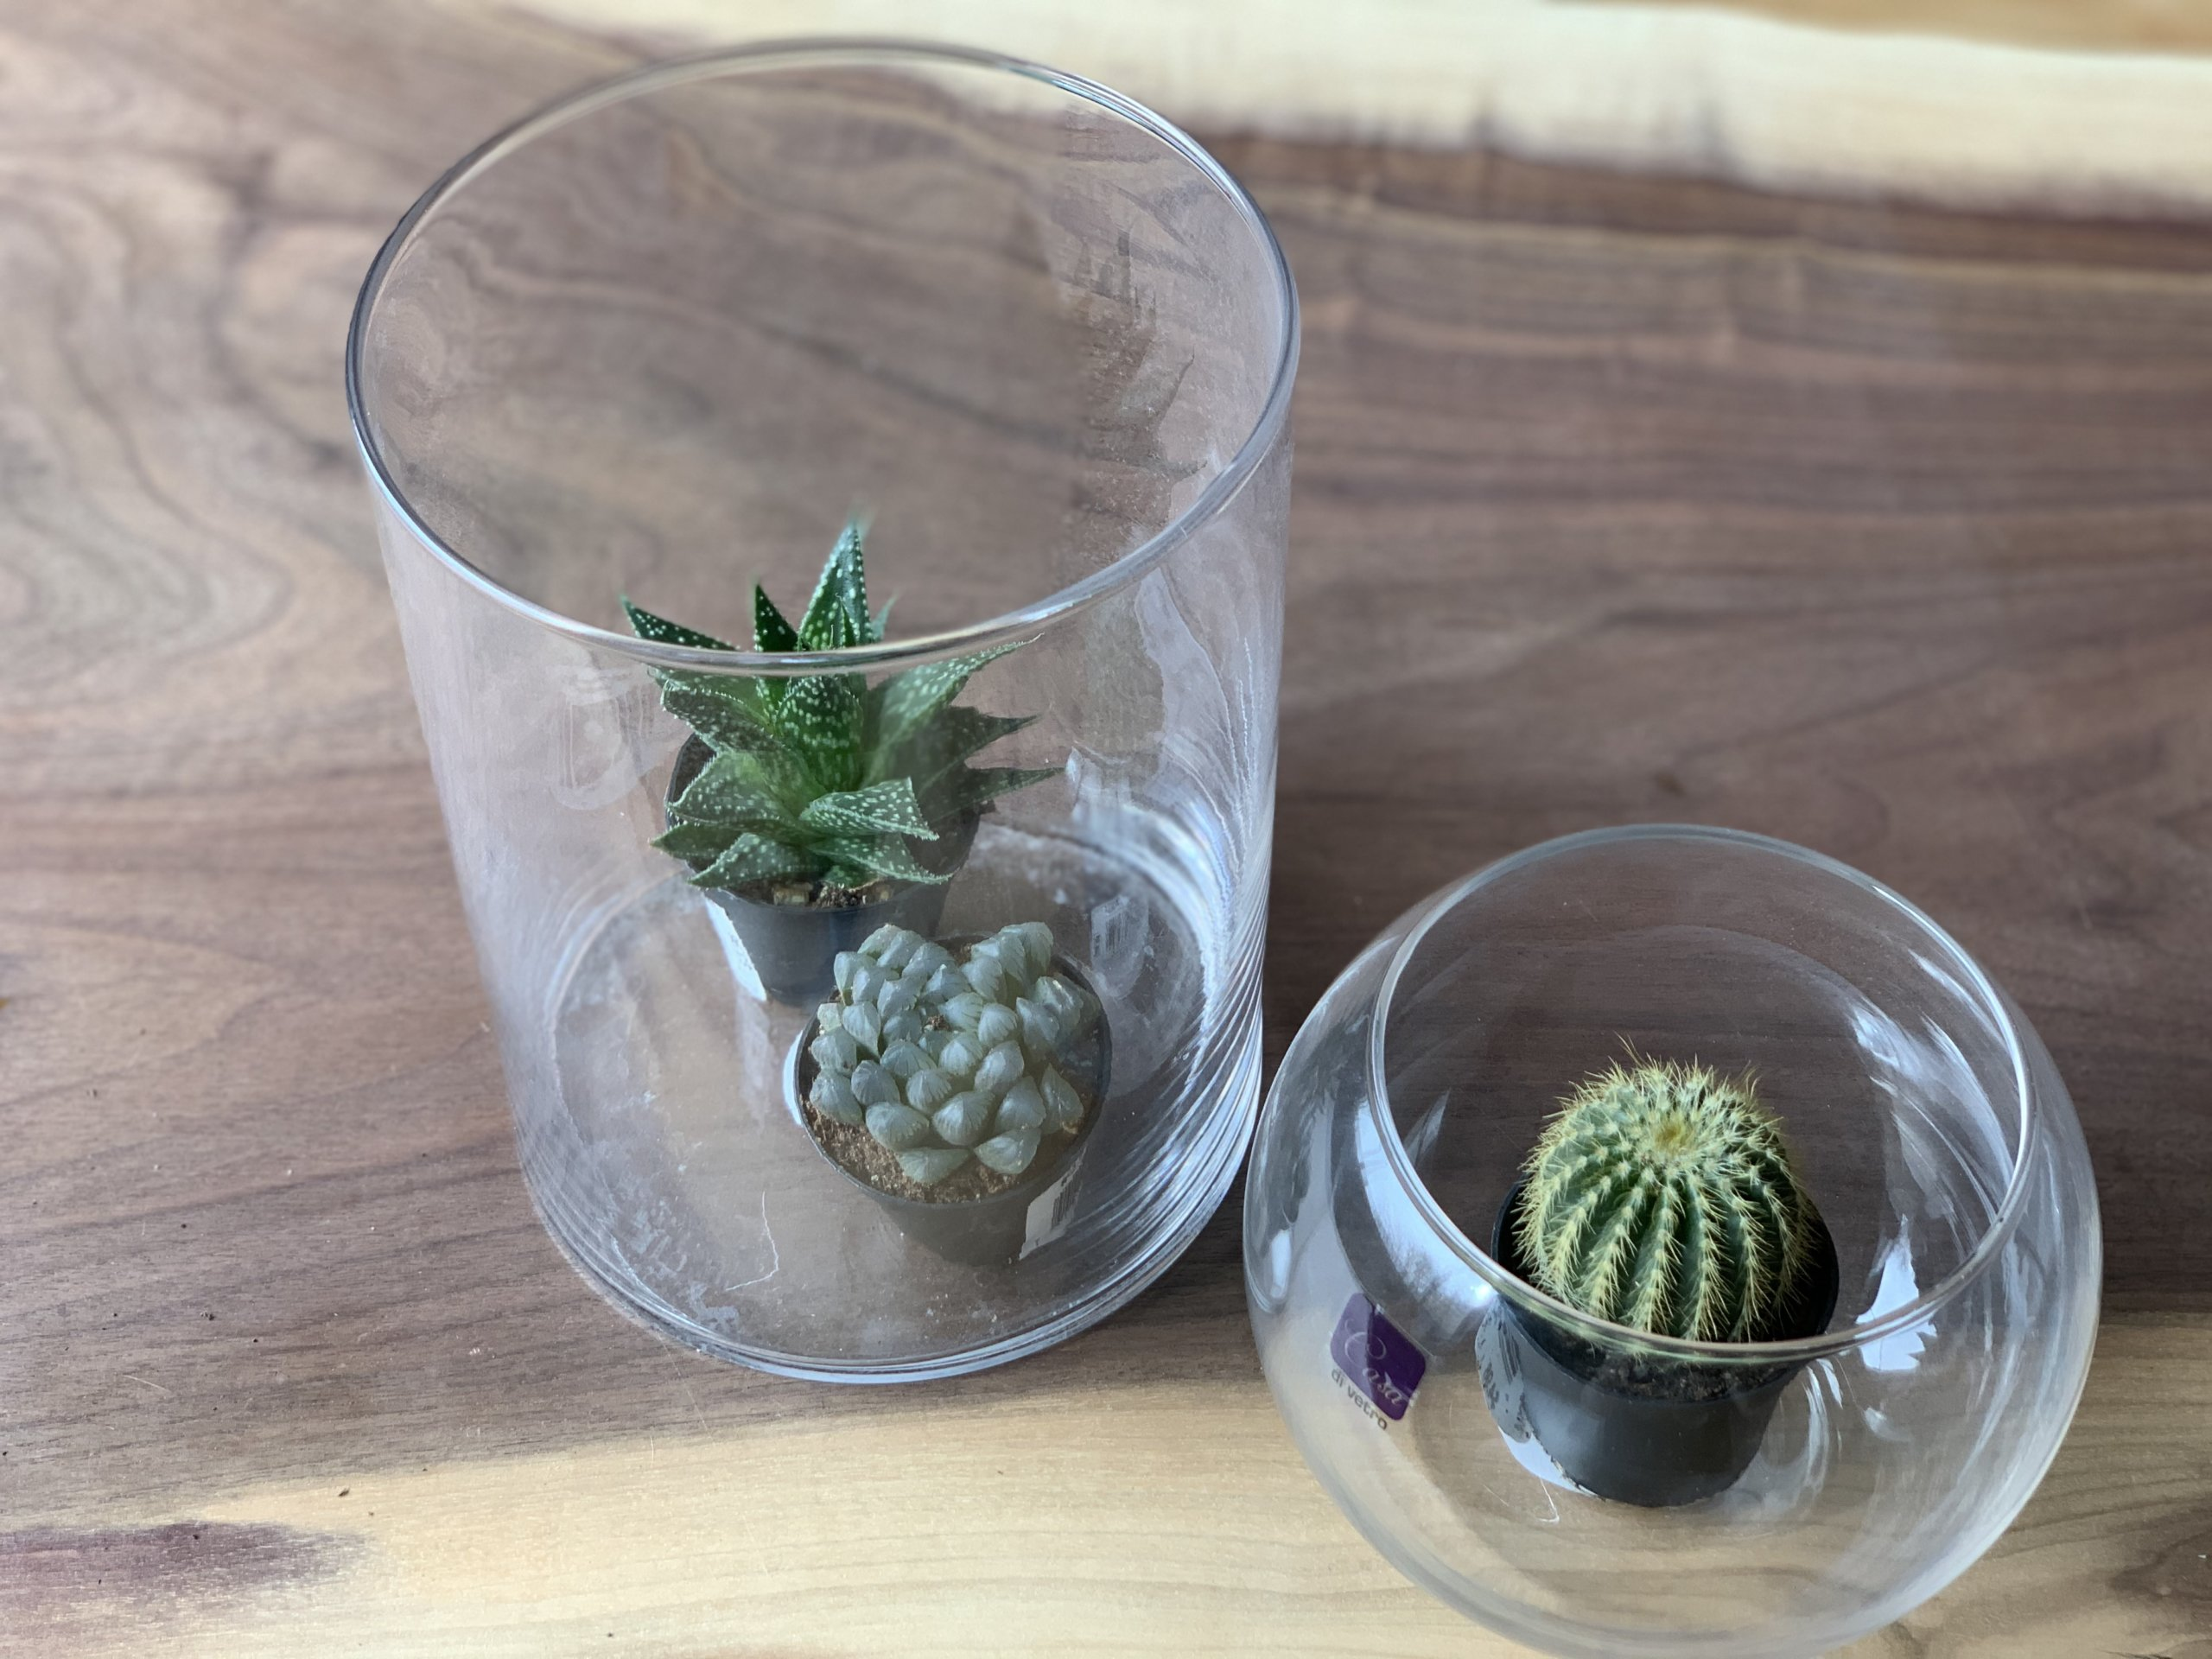 Succulent plants in glass jars